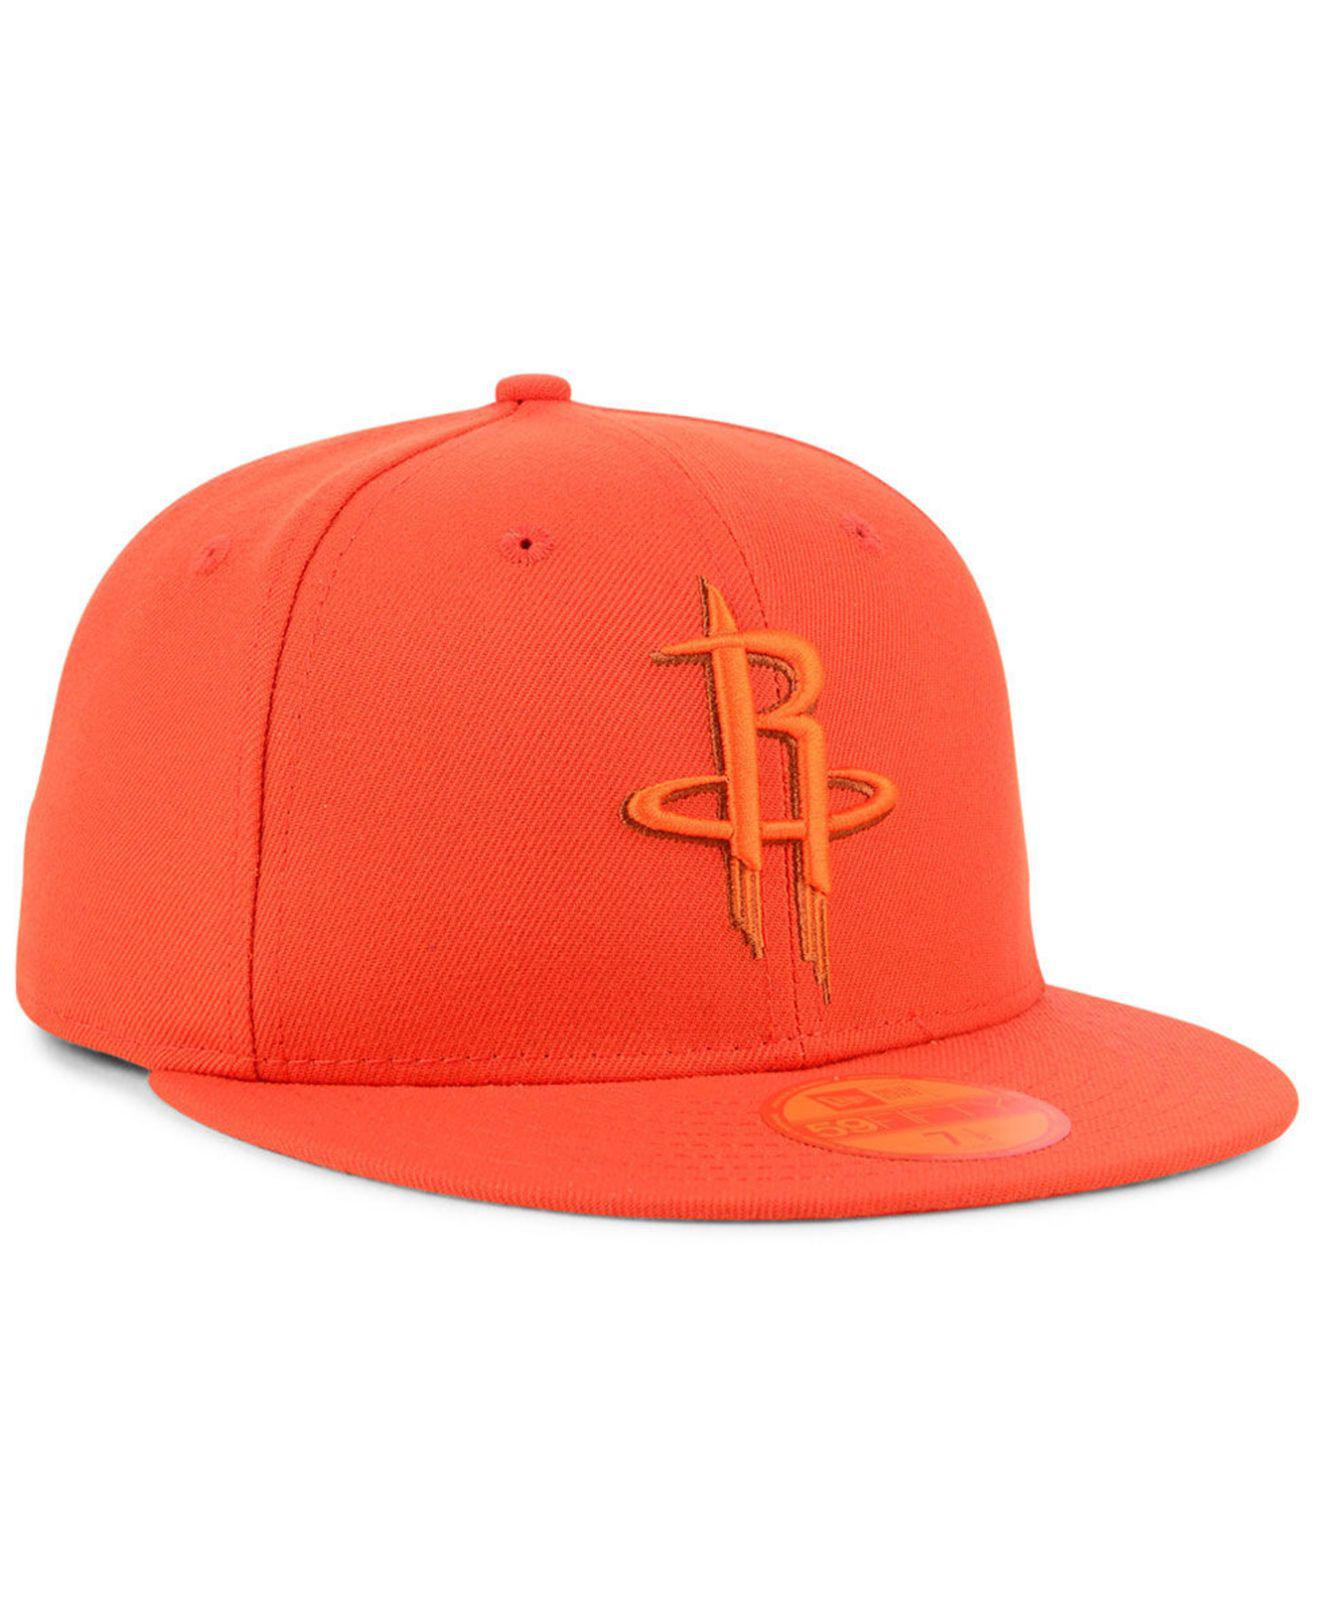 competitive price e6982 df8b1 ... order houston rockets color prism pack 59fifty fitted cap for men lyst.  view fullscreen 02f4a